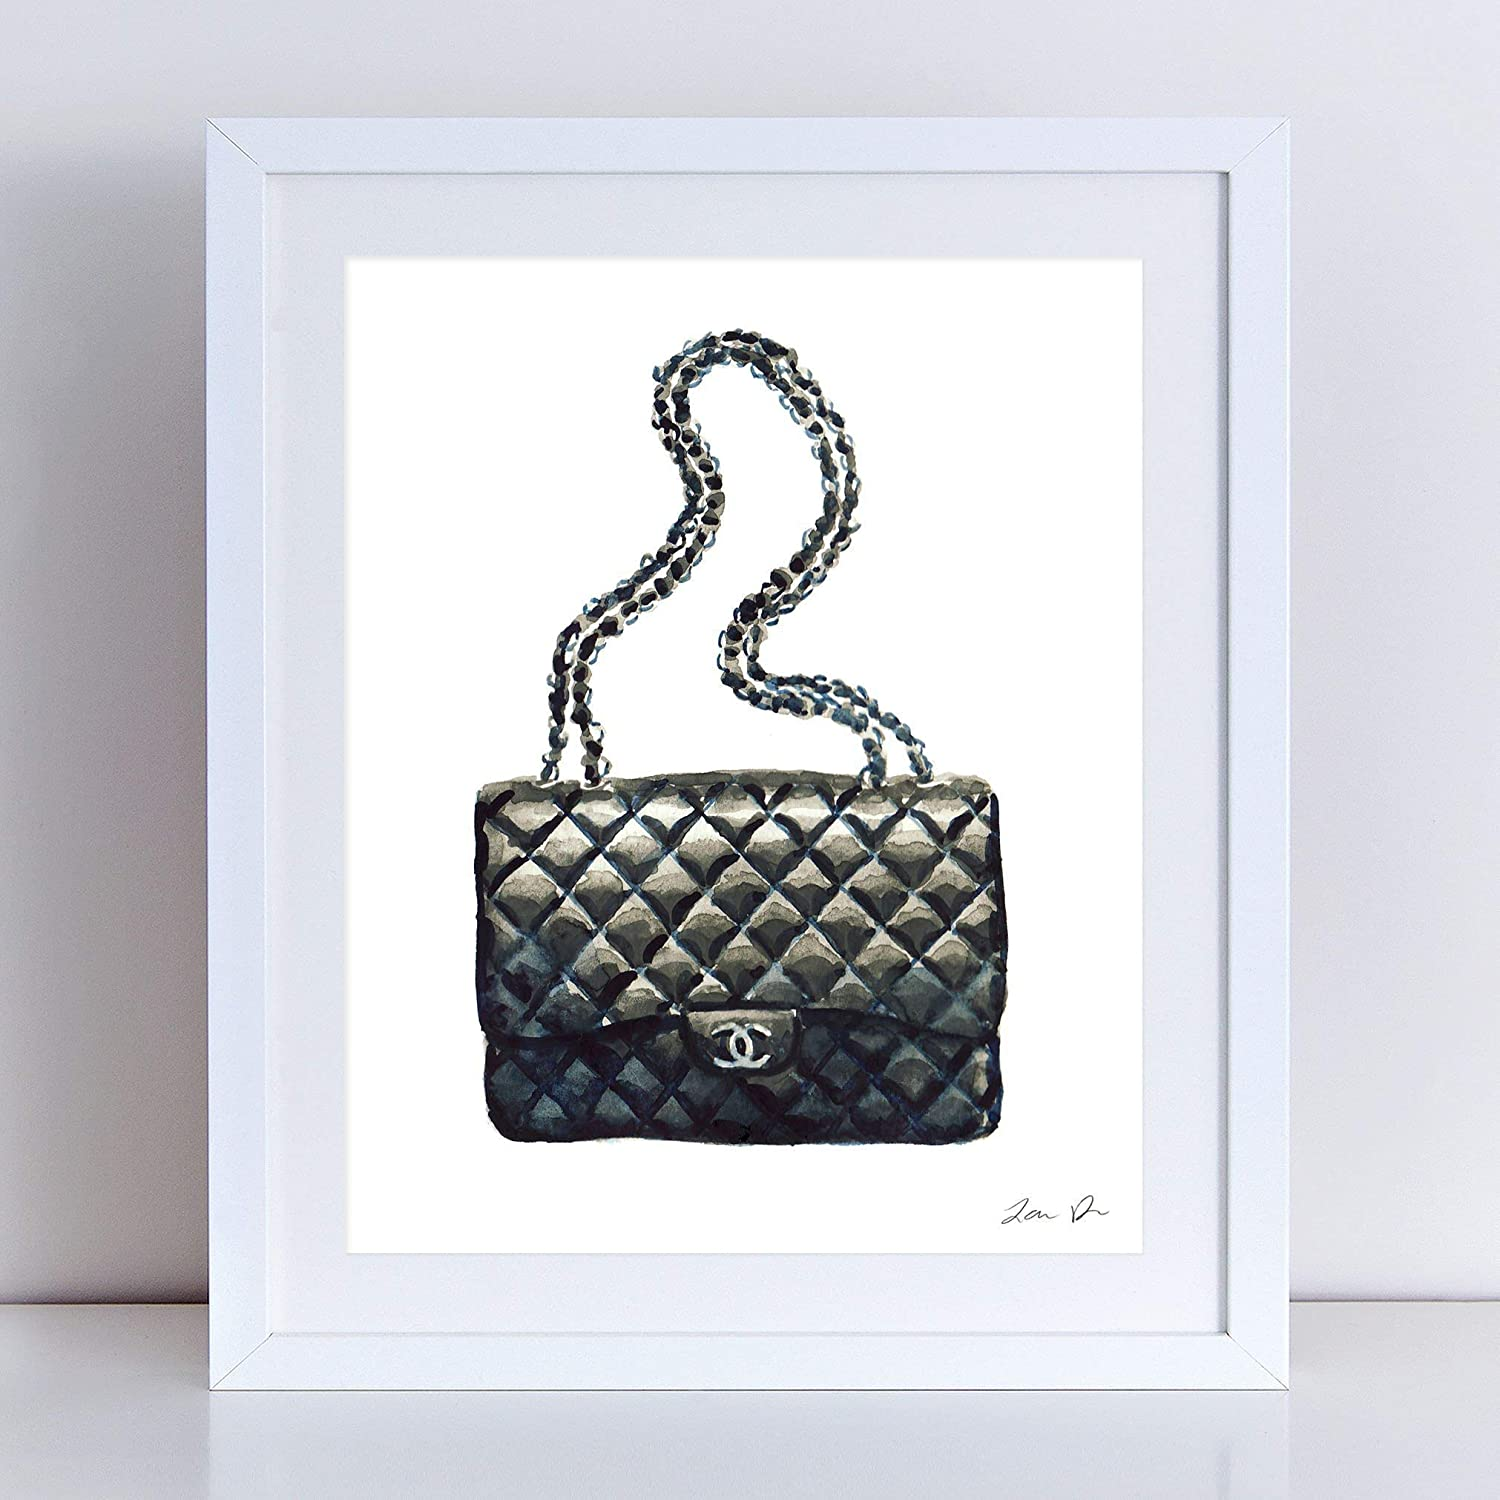 af552d0160ad57 Chanel Bag Art Print Watercolor Painting Wall Home Decor Chanel Handbag  Quilted Black Coco Chanel Fashion Illustration Vintage Chanel Preppy Pretty  Chic ...